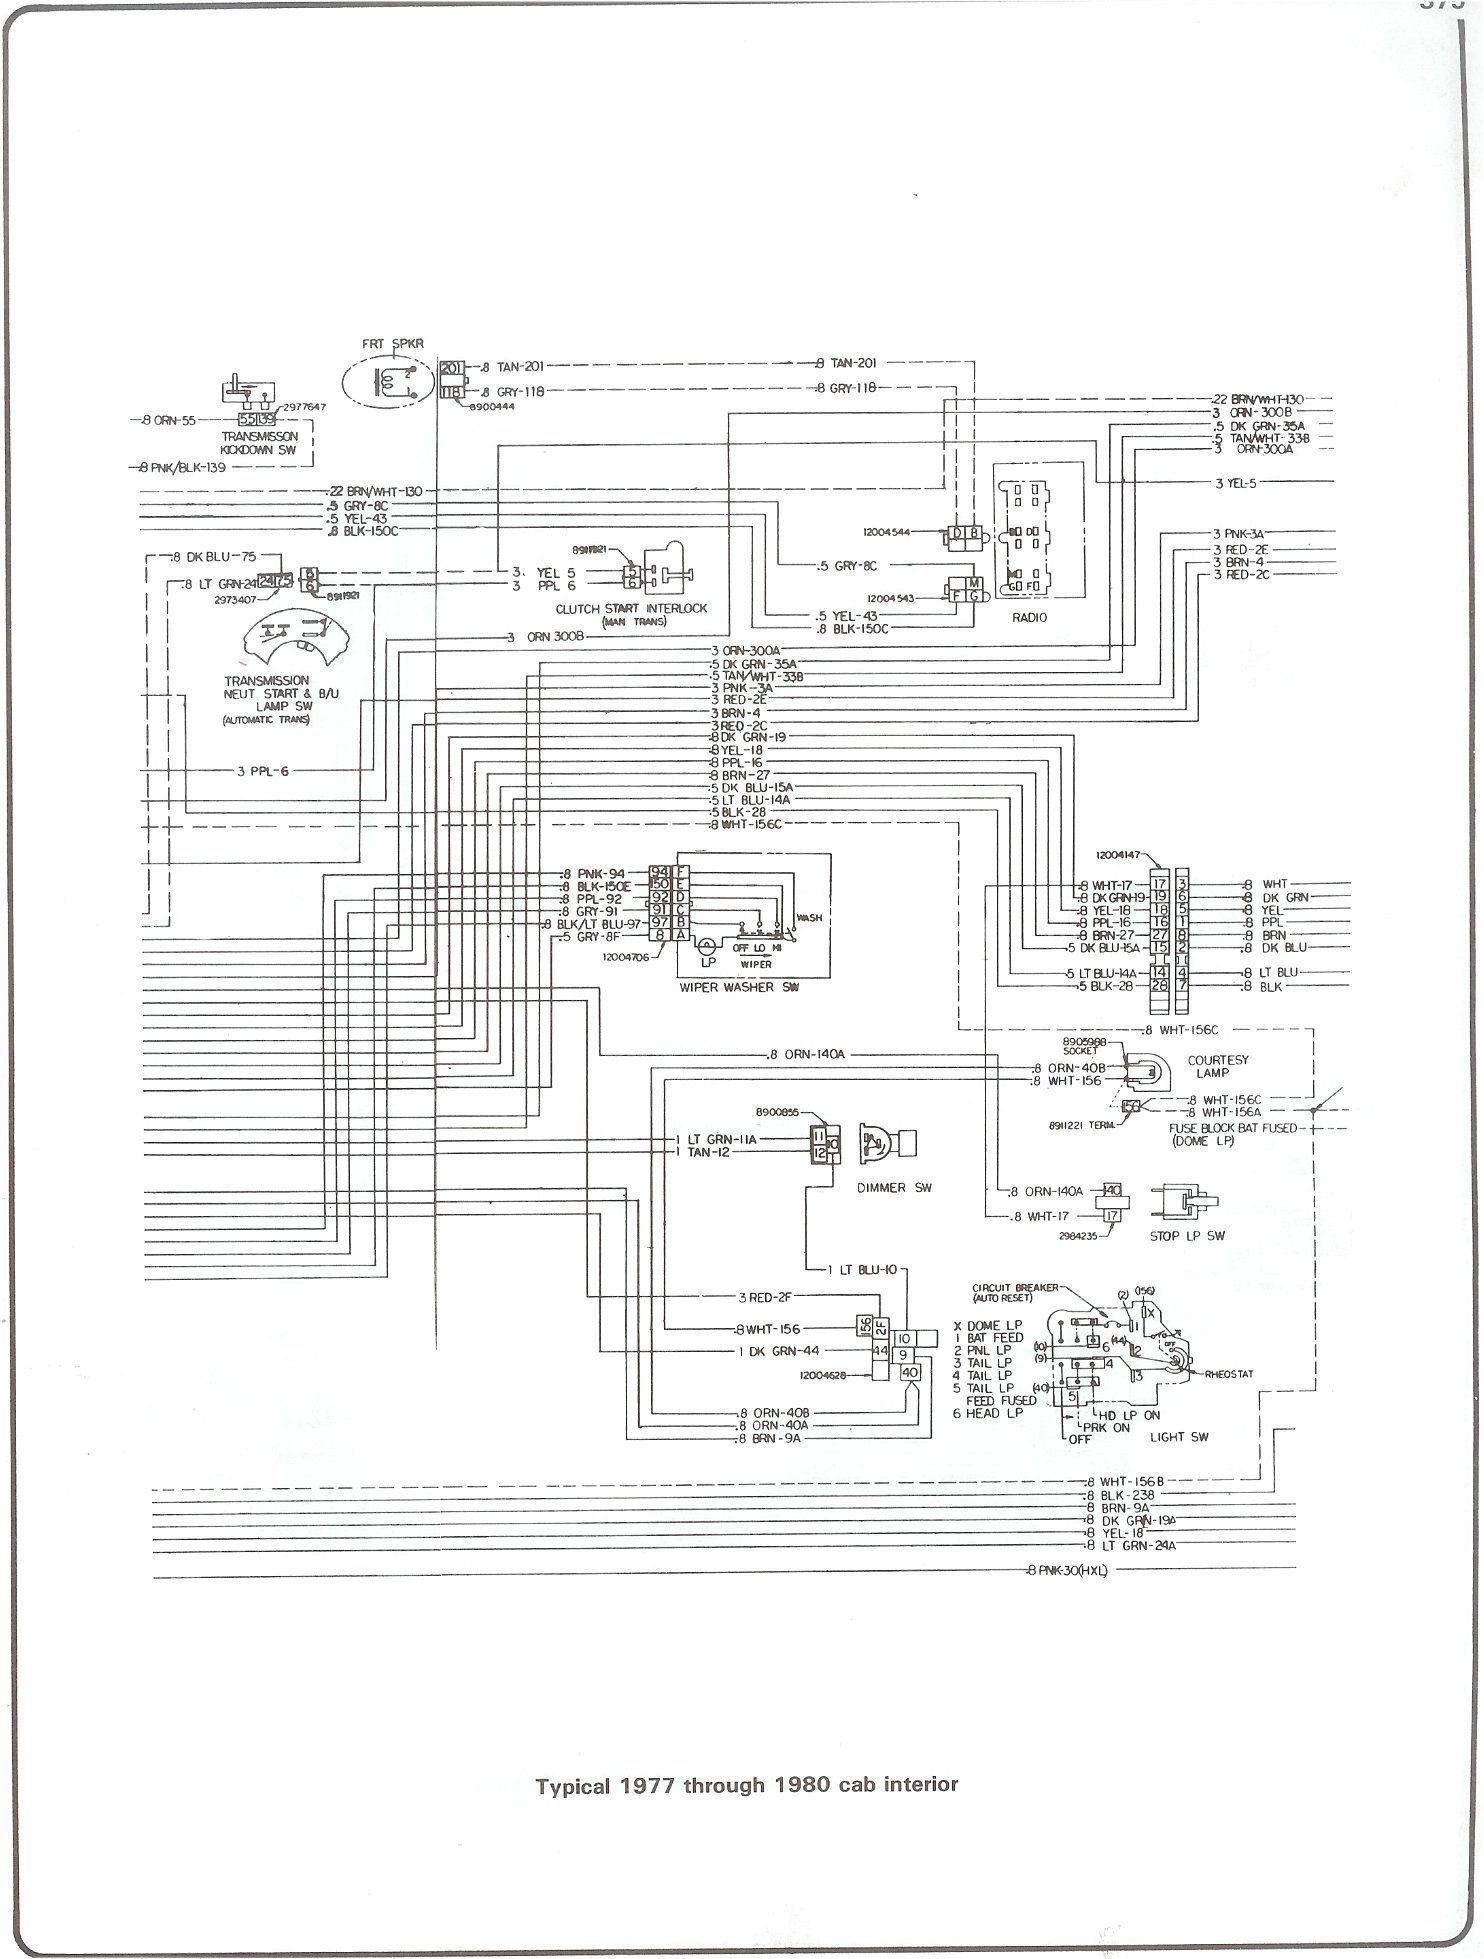 77 80_cab_inter complete 73 87 wiring diagrams 1984 chevy c10 wiring diagram at soozxer.org